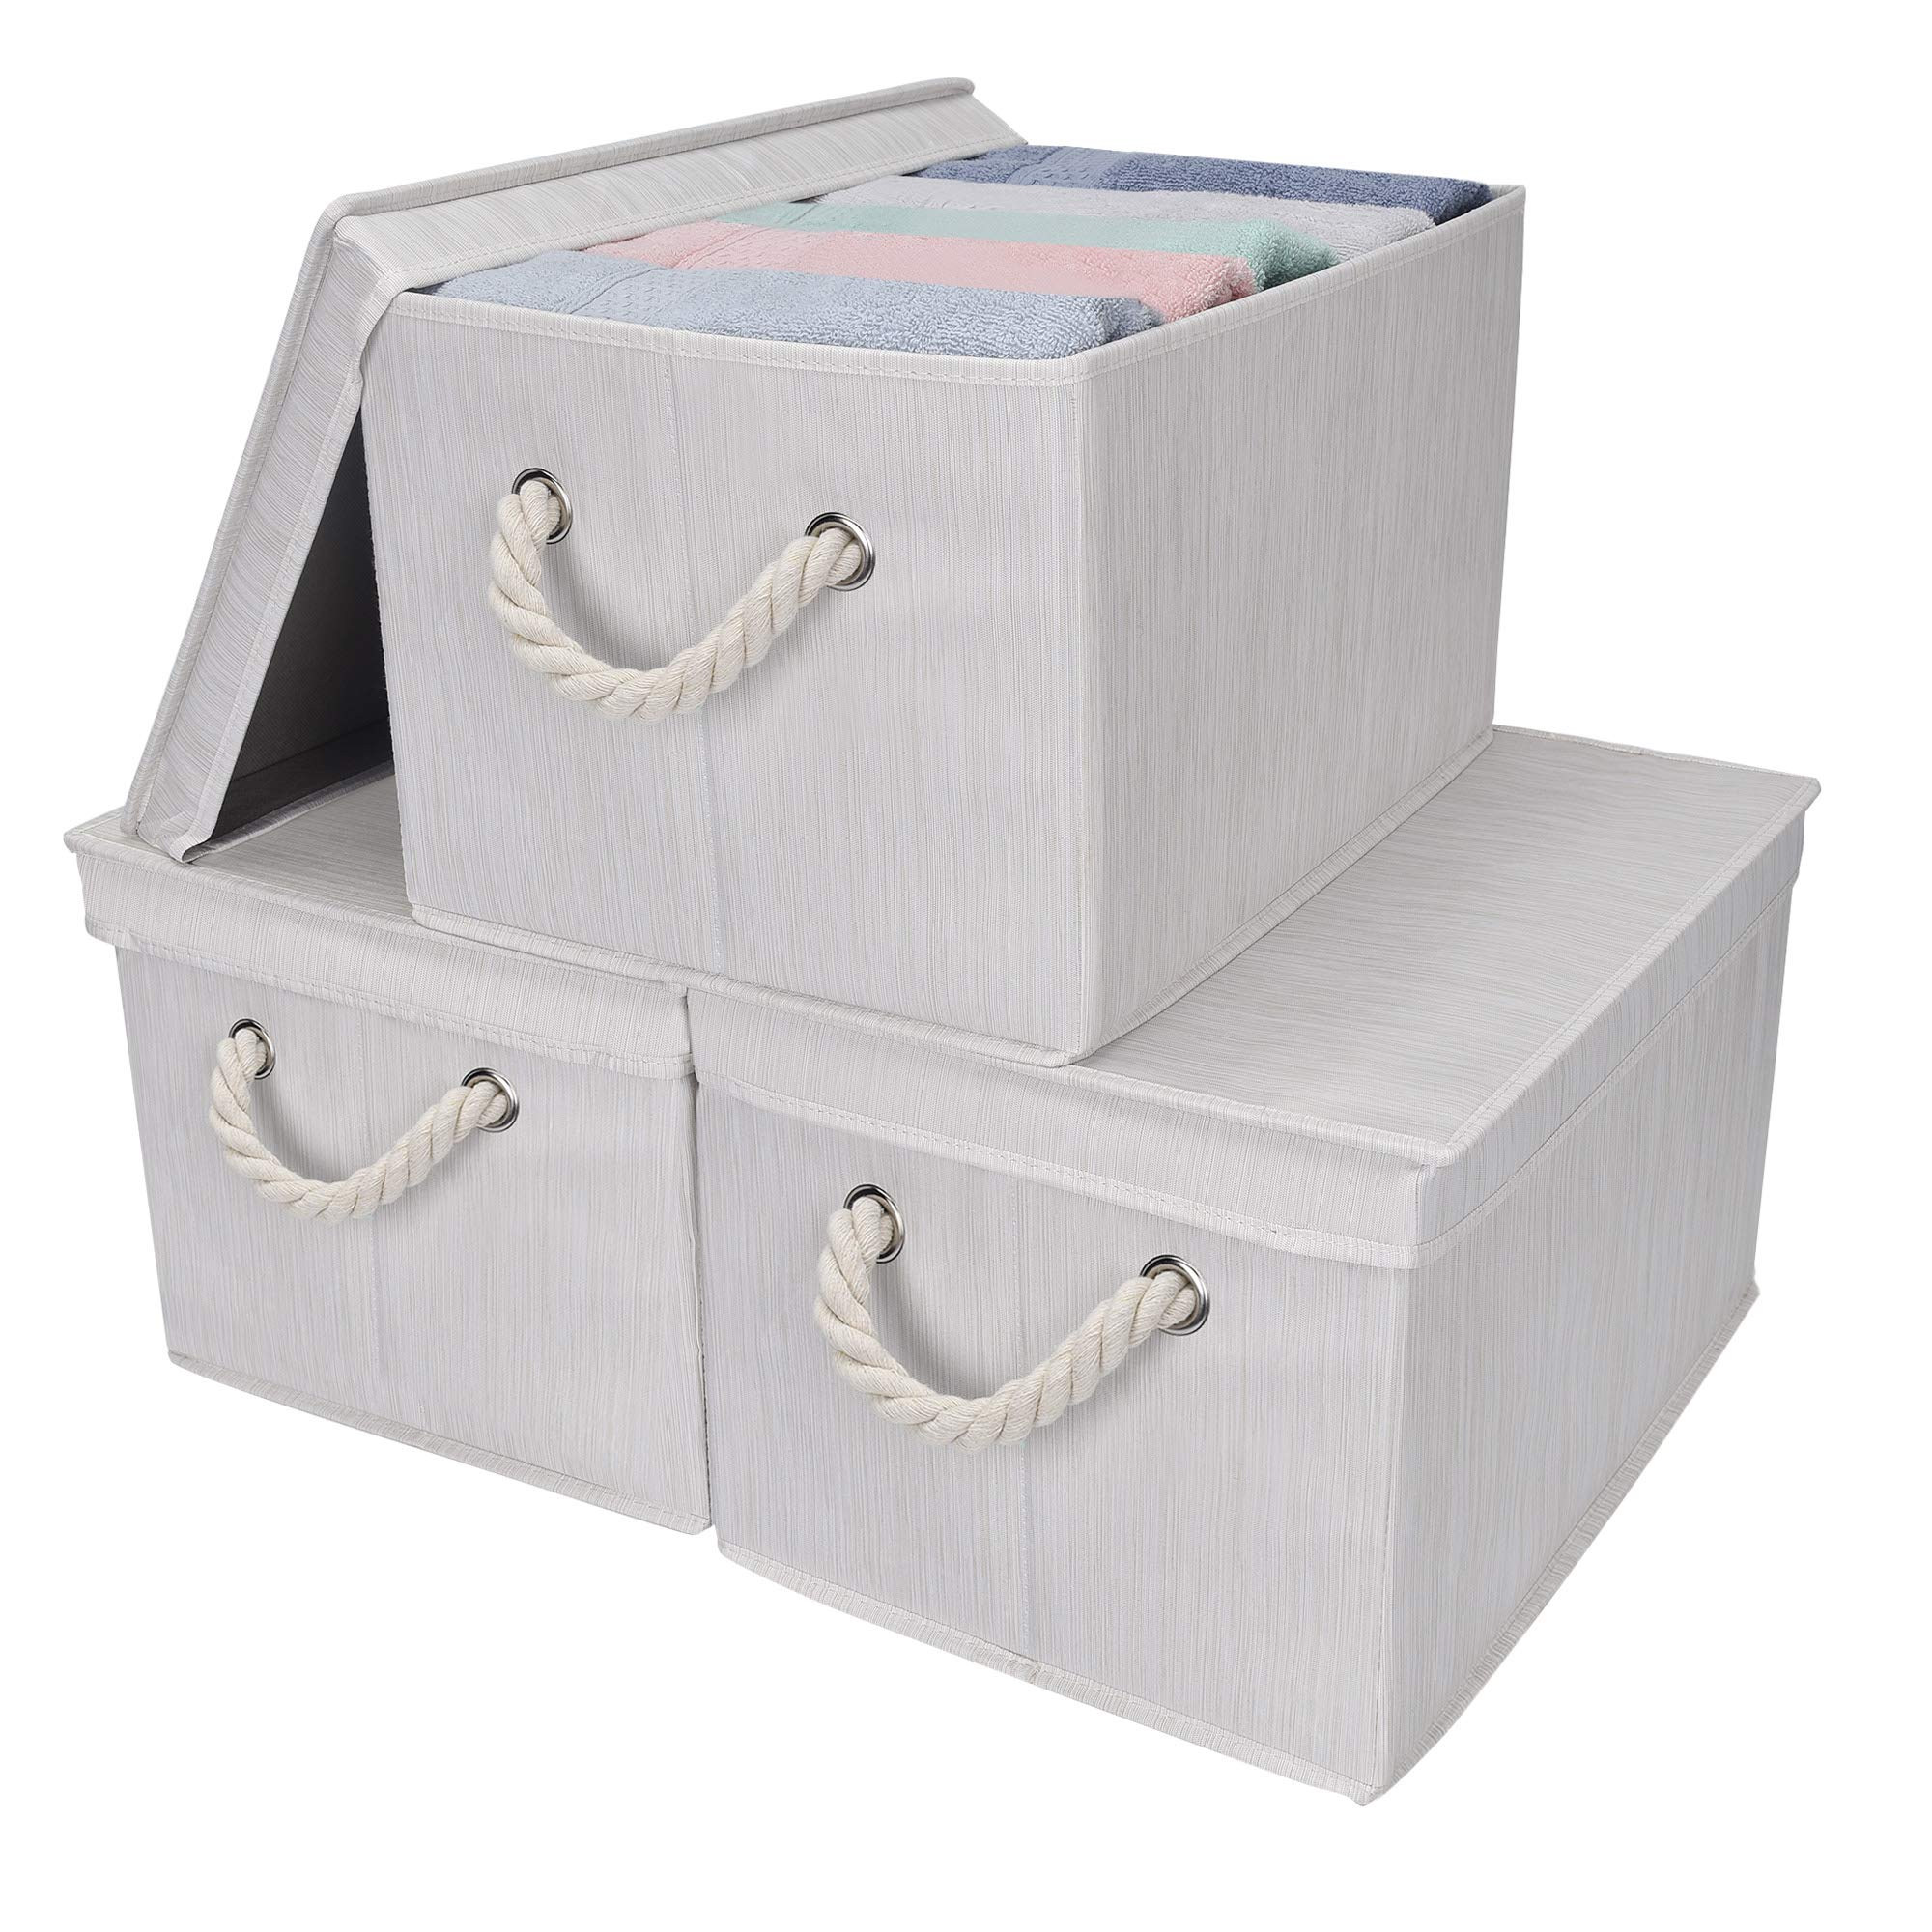 StorageWorks Storage Bins with Lids, Decorative Storage Boxes with Lids and Cotton Rope Handles, Mixing of Beige, White & Ivory, Jumbo, 3-Pack by StorageWorks